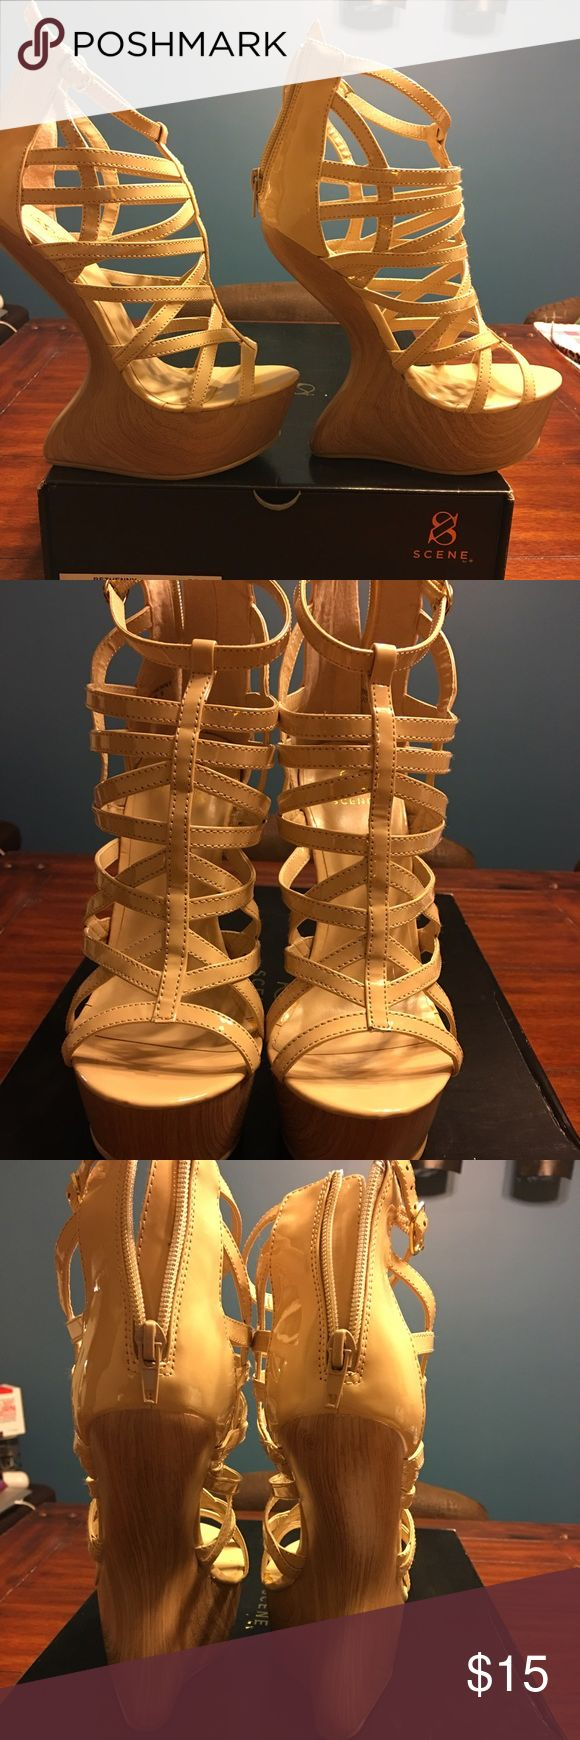 """Unique """"No Heel"""" Platform Shoes Get in touch with your inner Lady Gaga in these shoes. Bought from Shoe Dazzle. Beige leather with no heel illusion. Only worn twice. Very sexy on! Shoe Dazzle Shoes Wedges"""